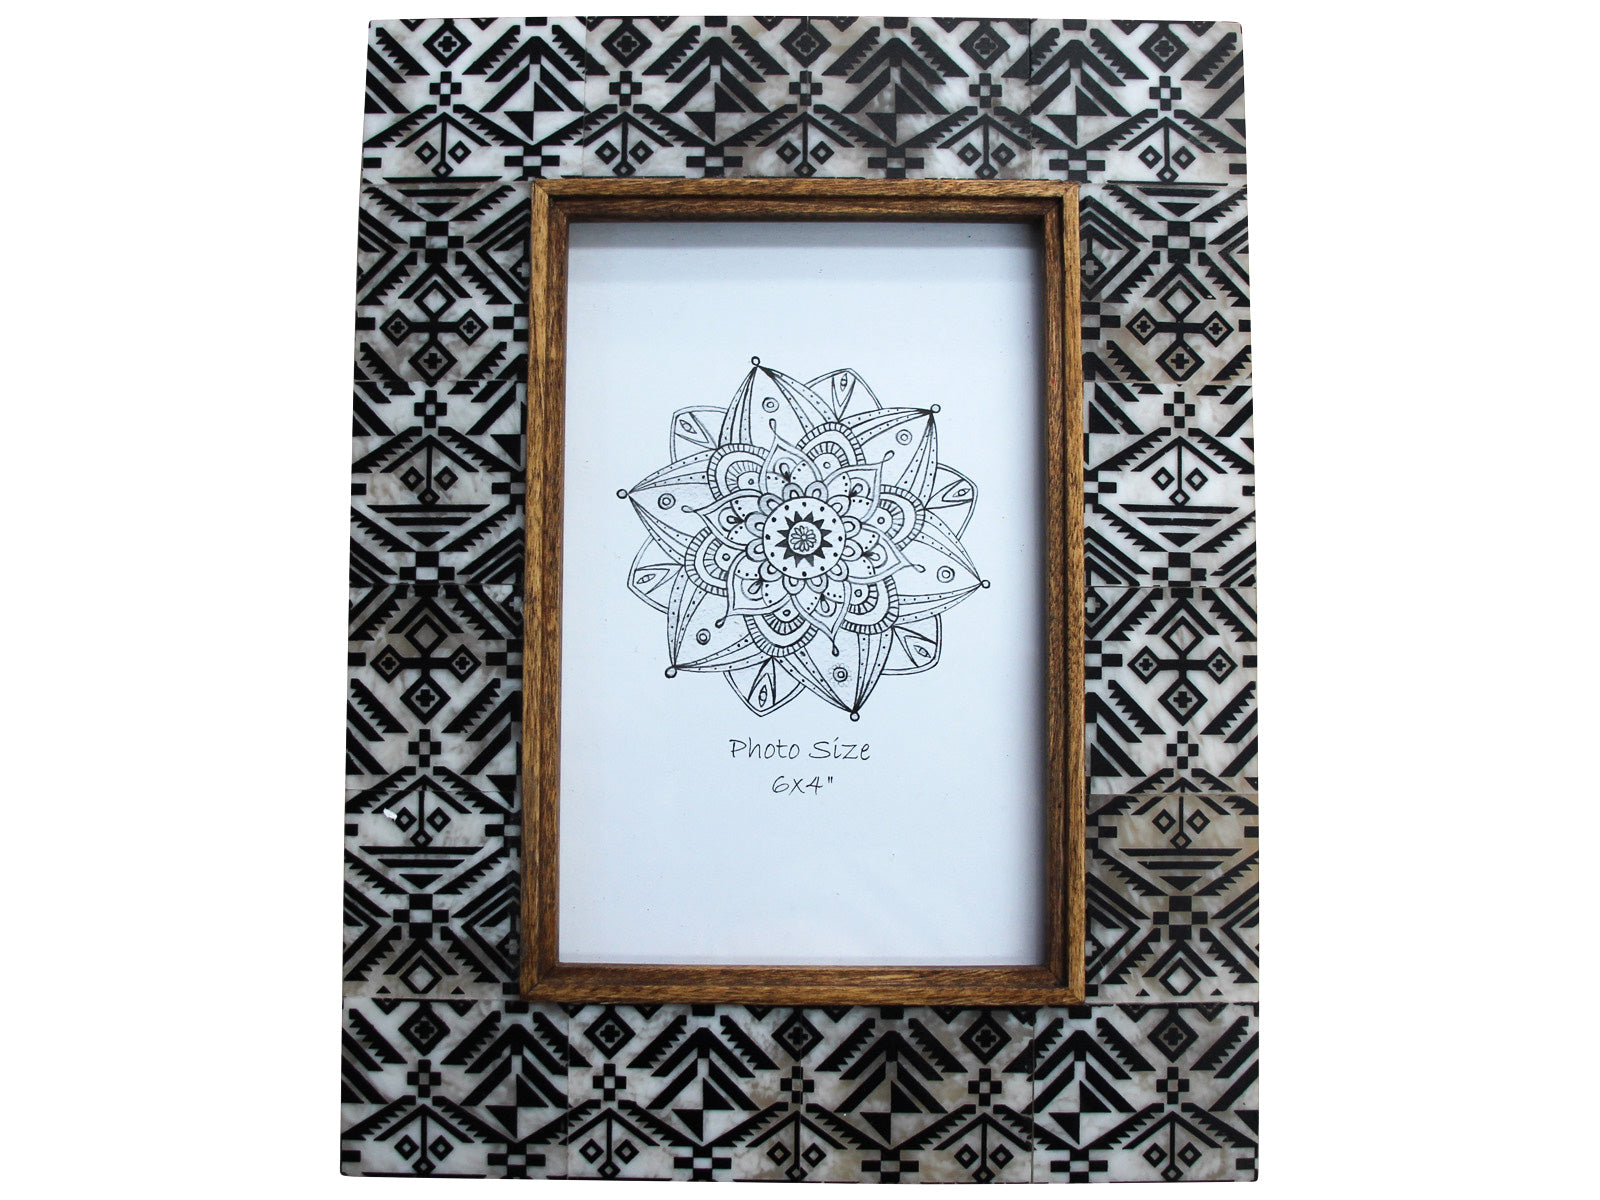 Aztec Photo frame